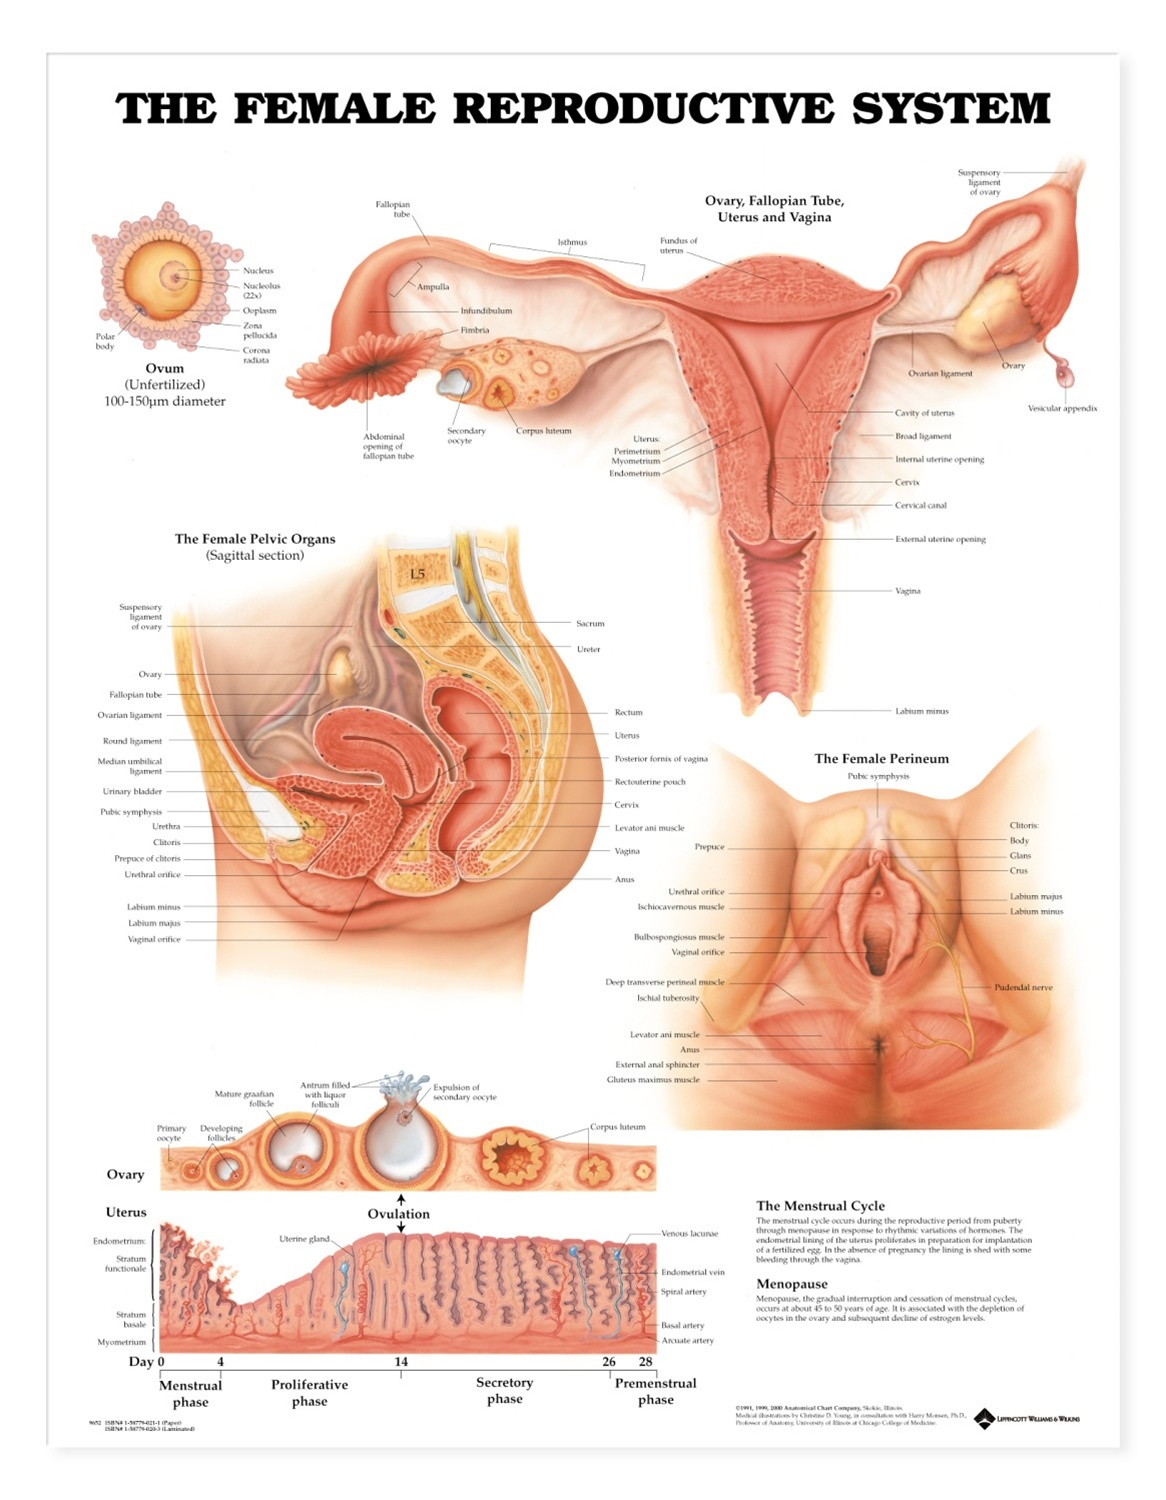 The Female Reproductive System Anatomical Chart Anatomy Models And